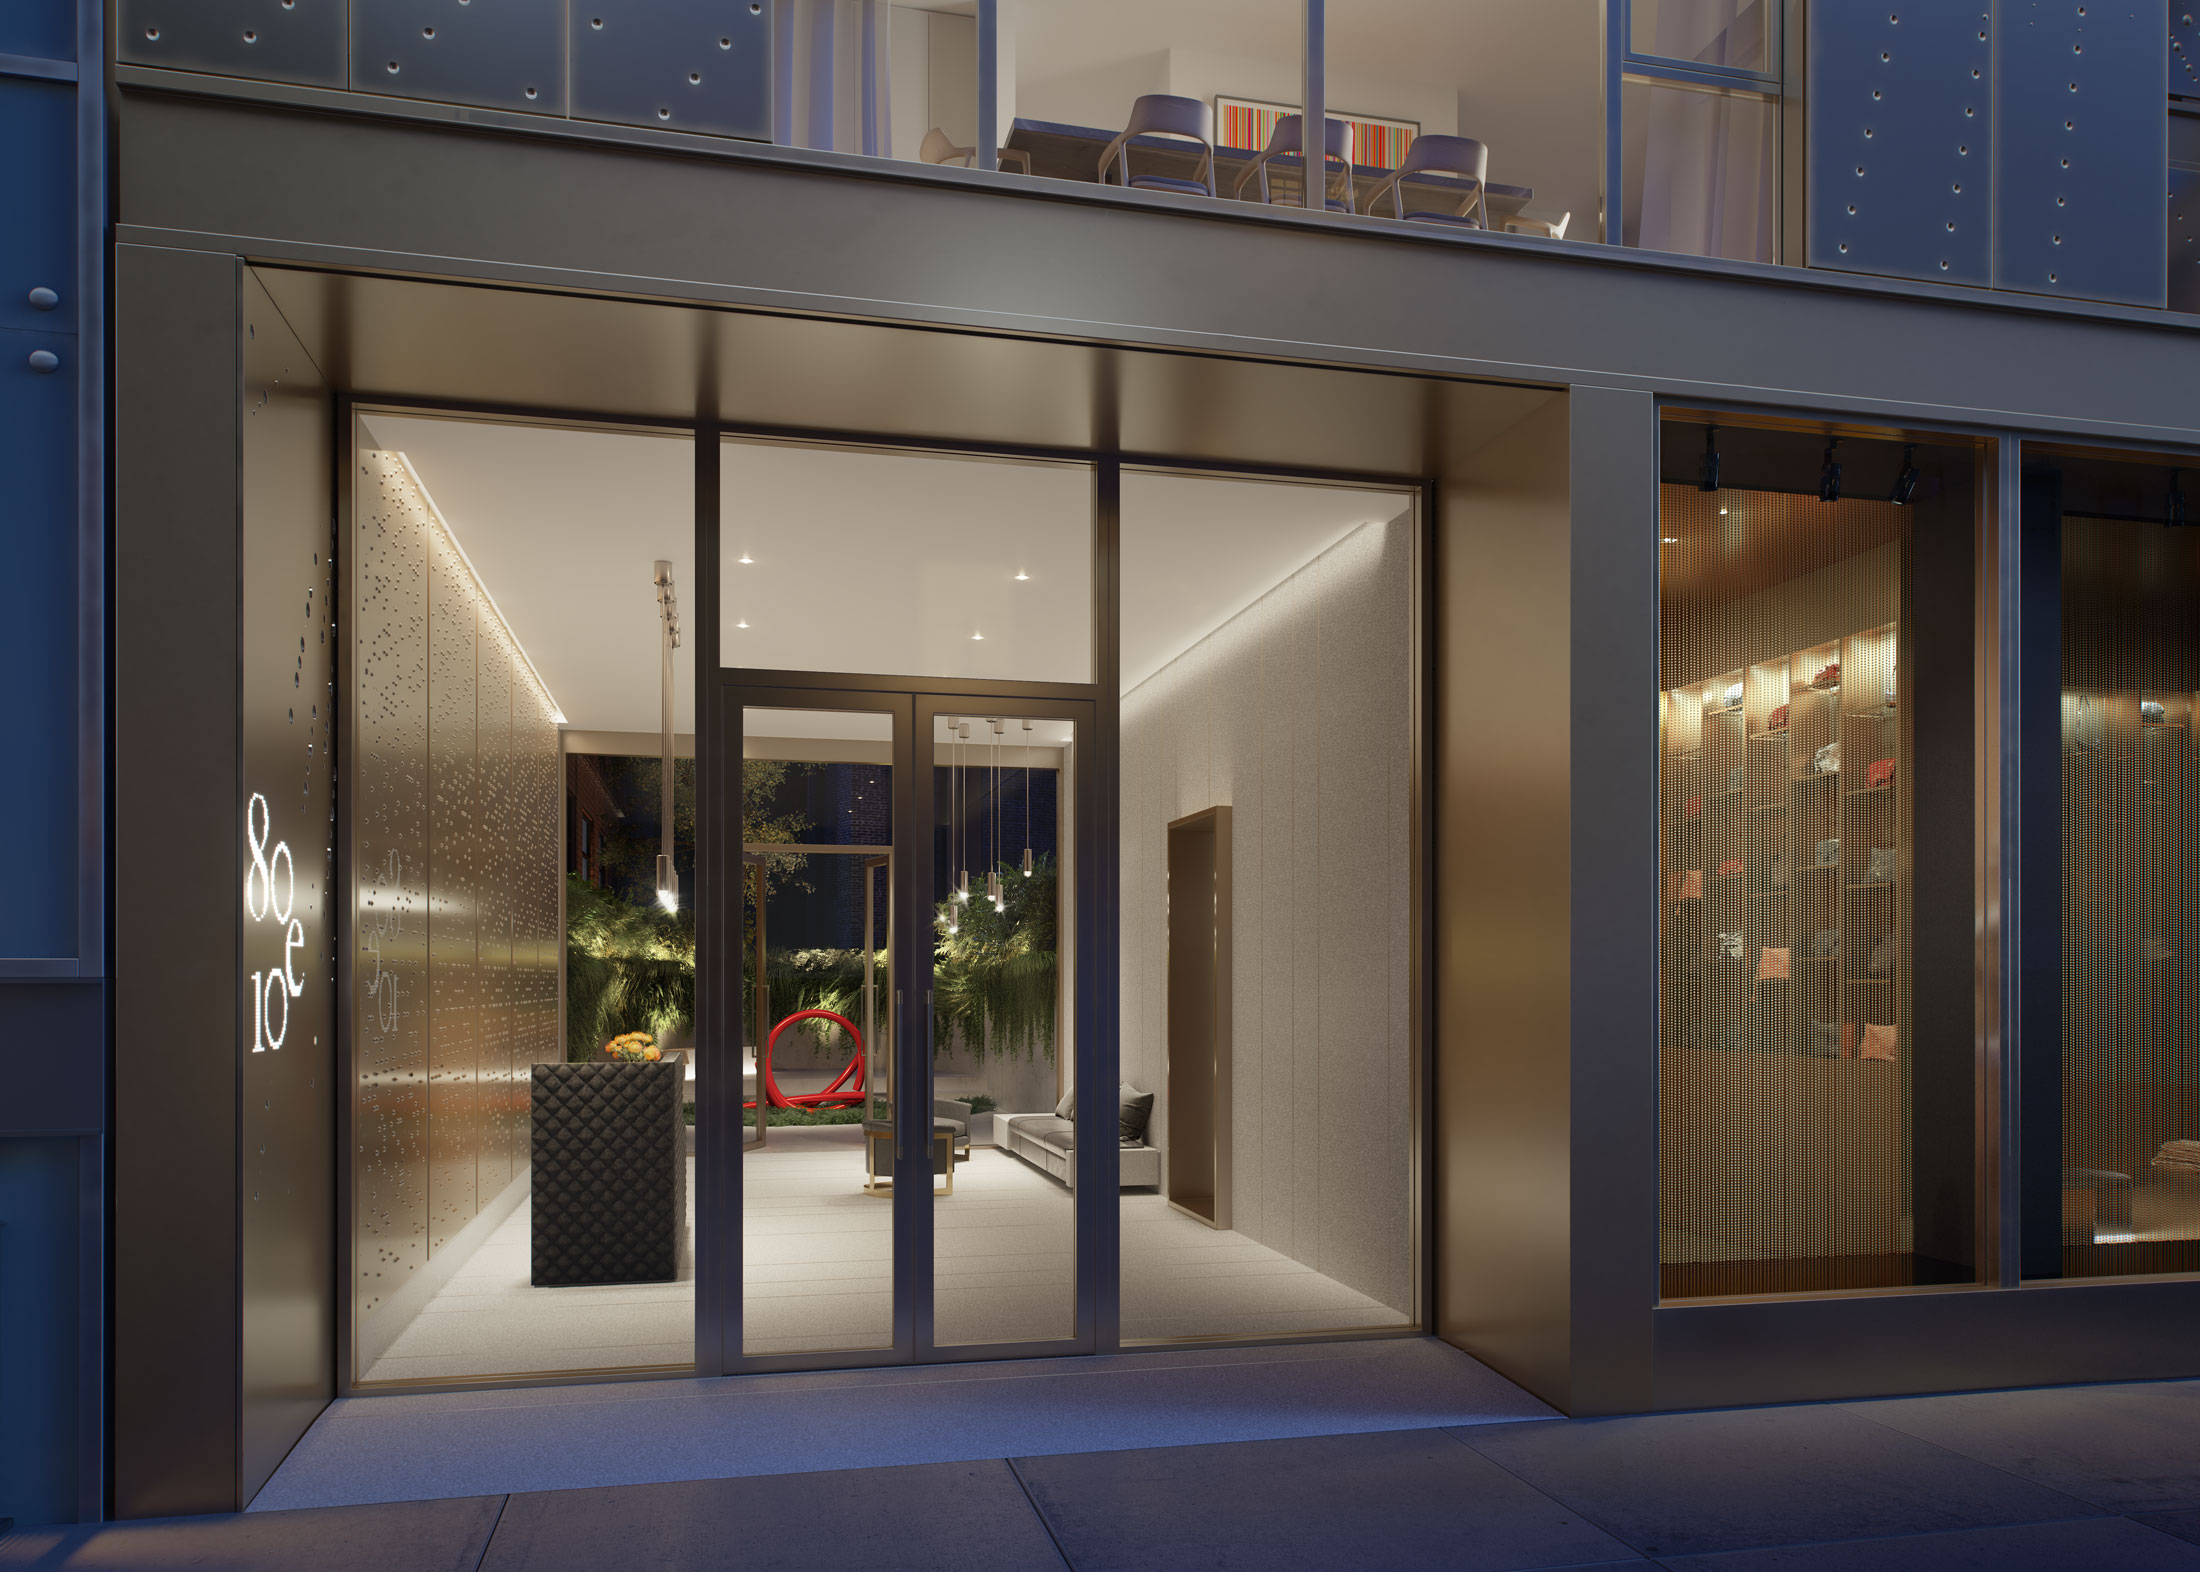 Architectural Rendering of the entrance of the 80 East 10th Street project located in Greenwich Village in New York City